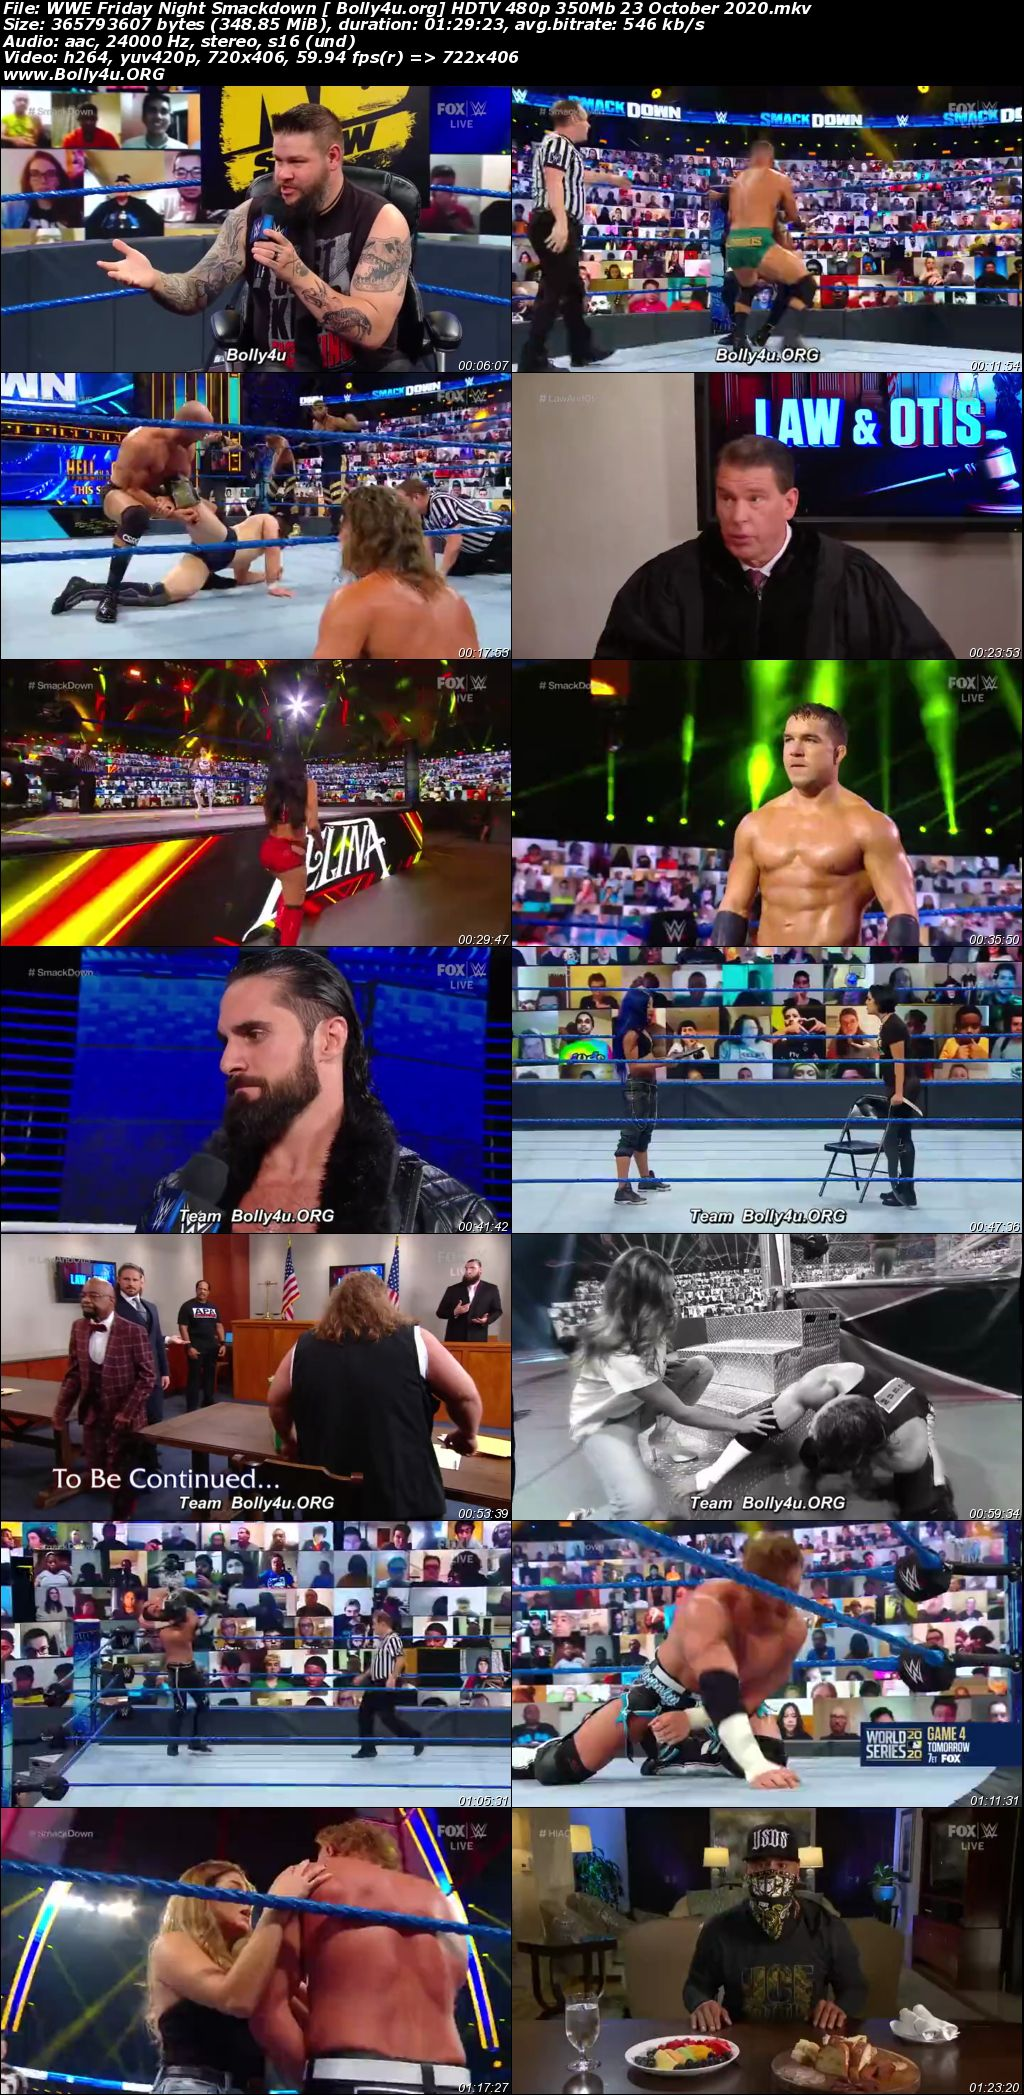 WWE Friday Night Smackdown HDTV 480p 350Mb 23 October 2020 Download